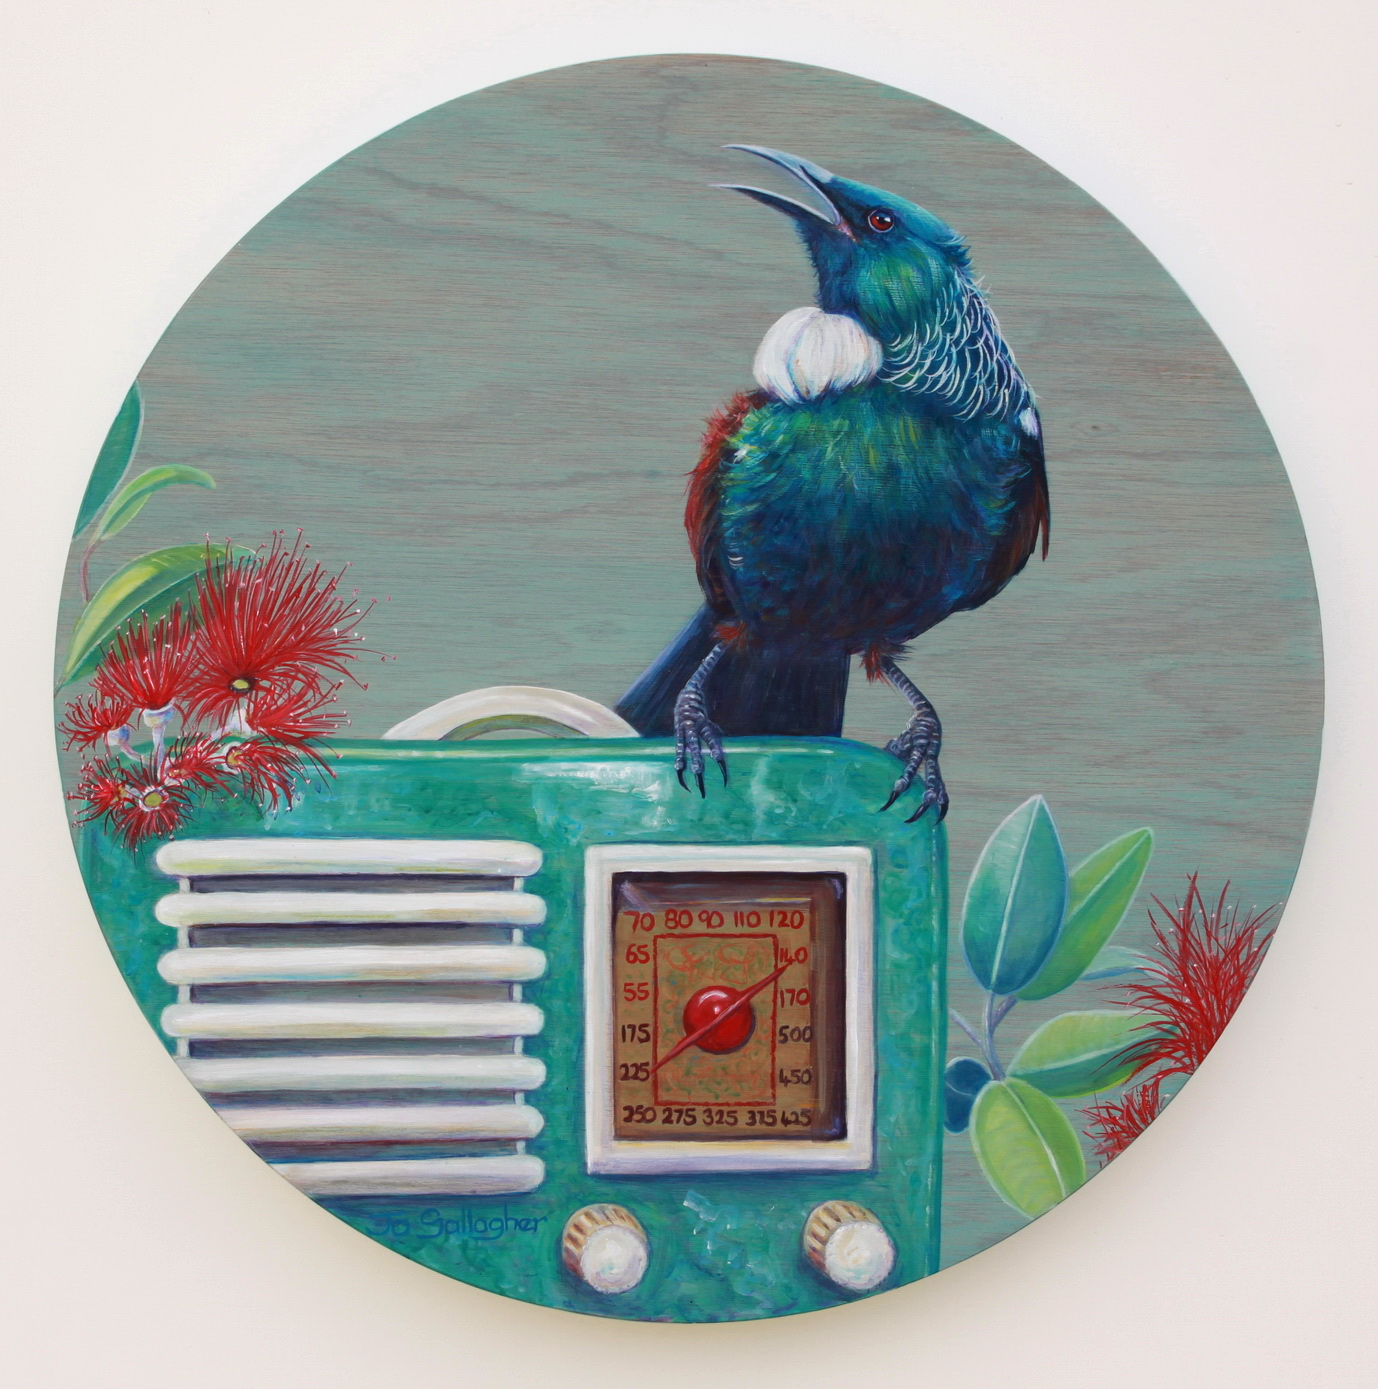 The NZ Song Bird